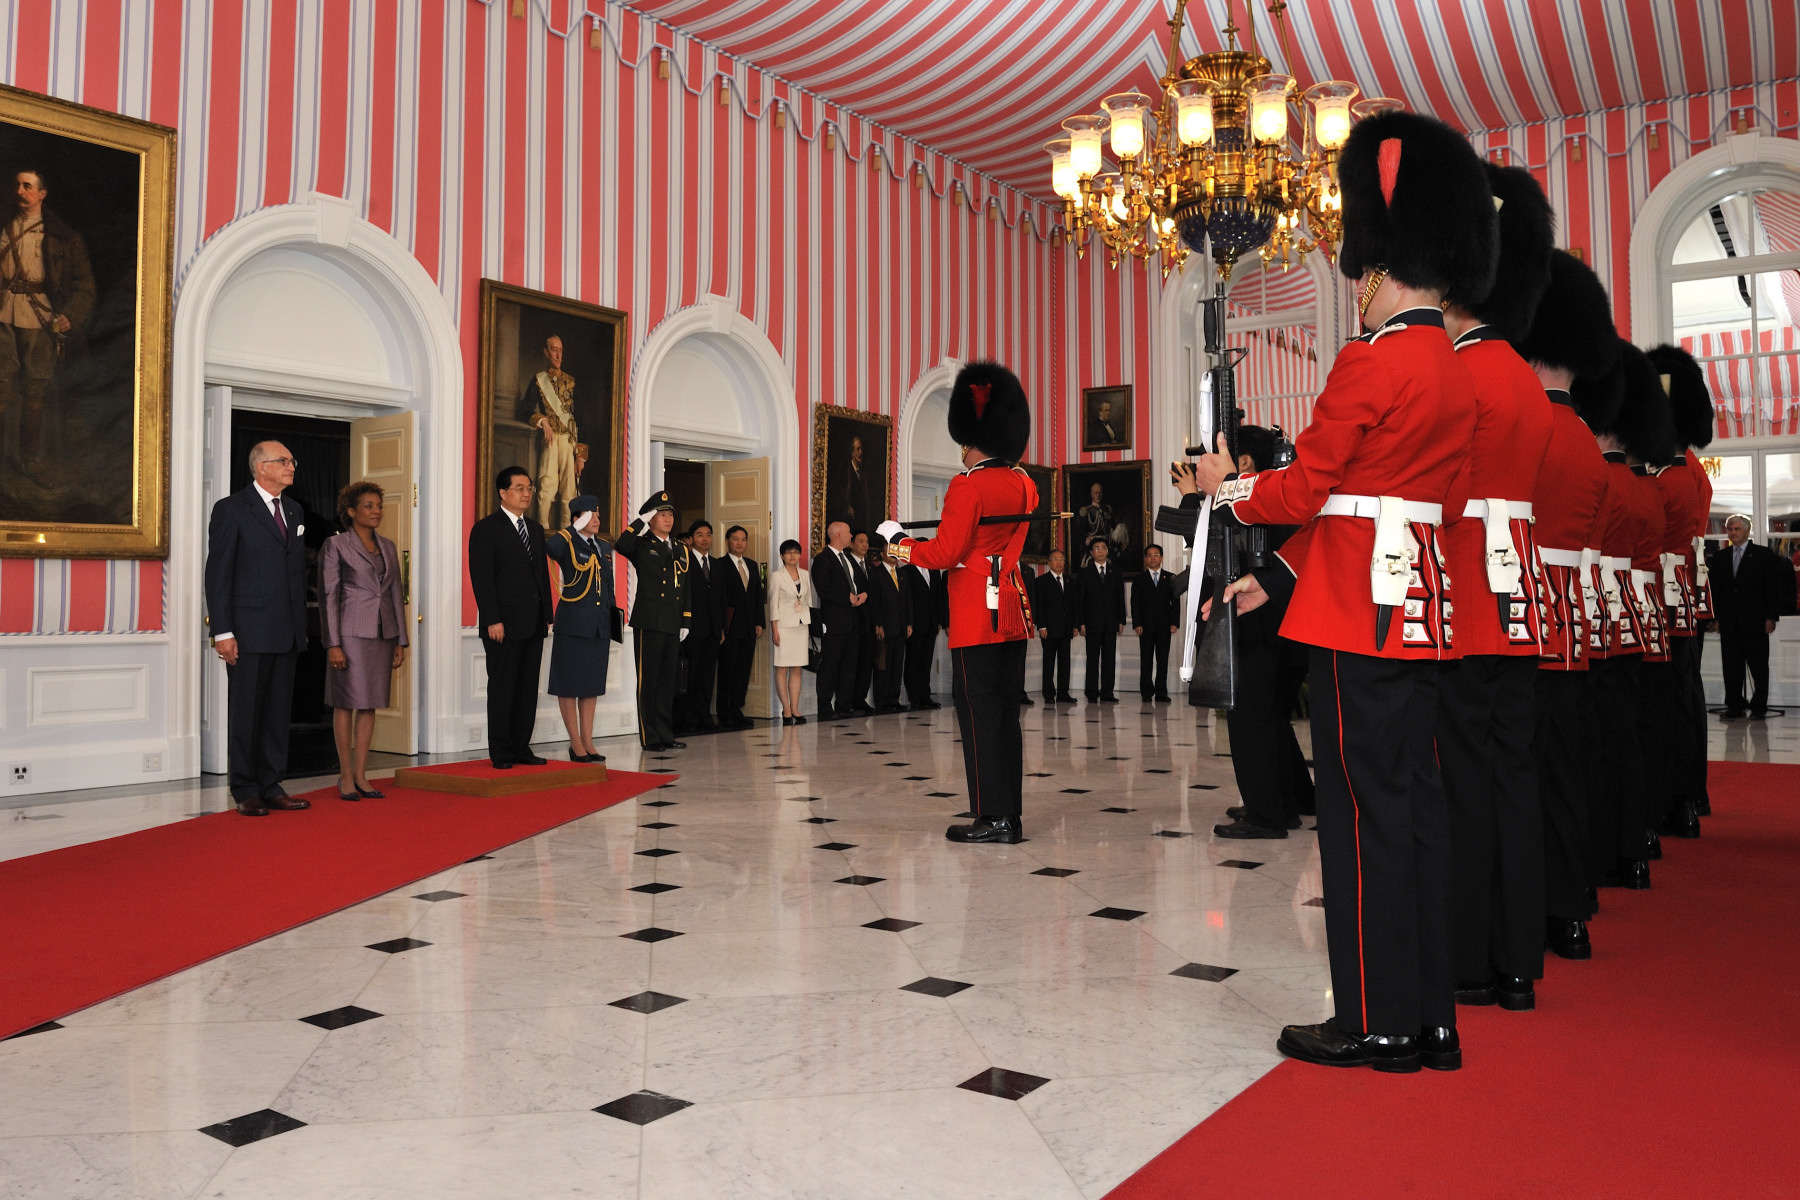 An official welcoming ceremony, with military honours, was held at Rideau Hall. His Excellency Hu Jintao conducted the inspection of the Guard of Honour.